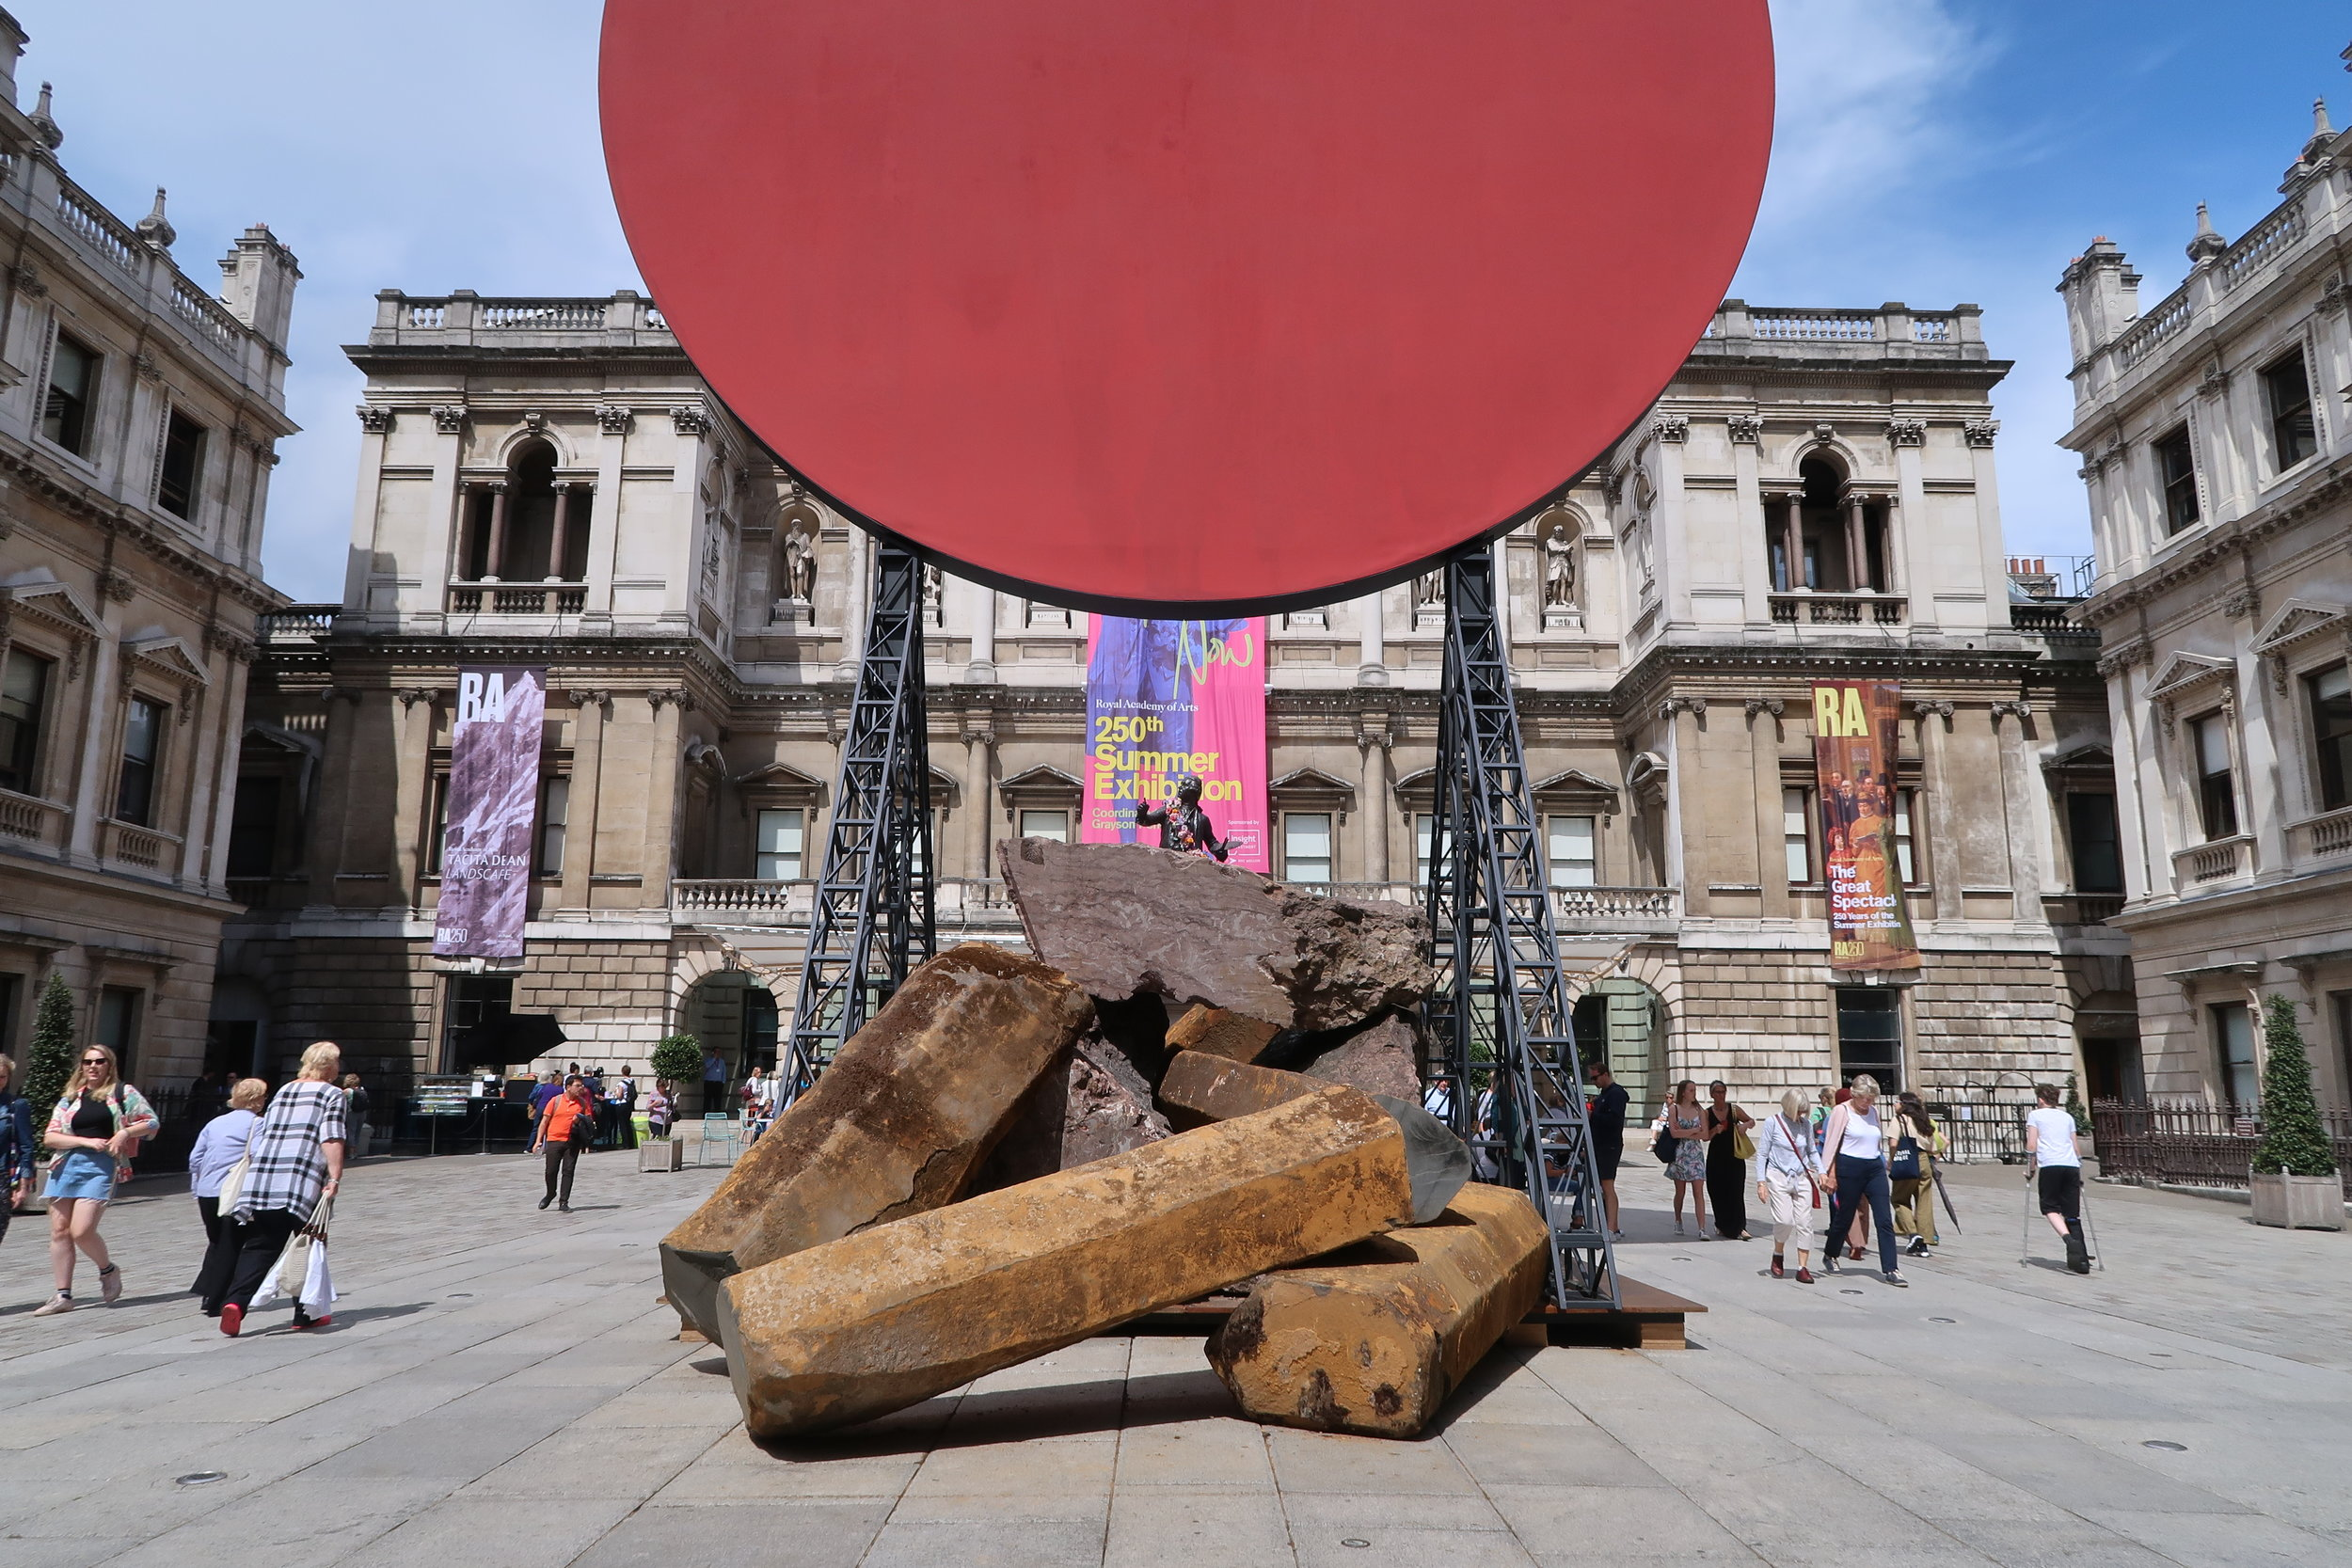 The Royal Academy - own photo